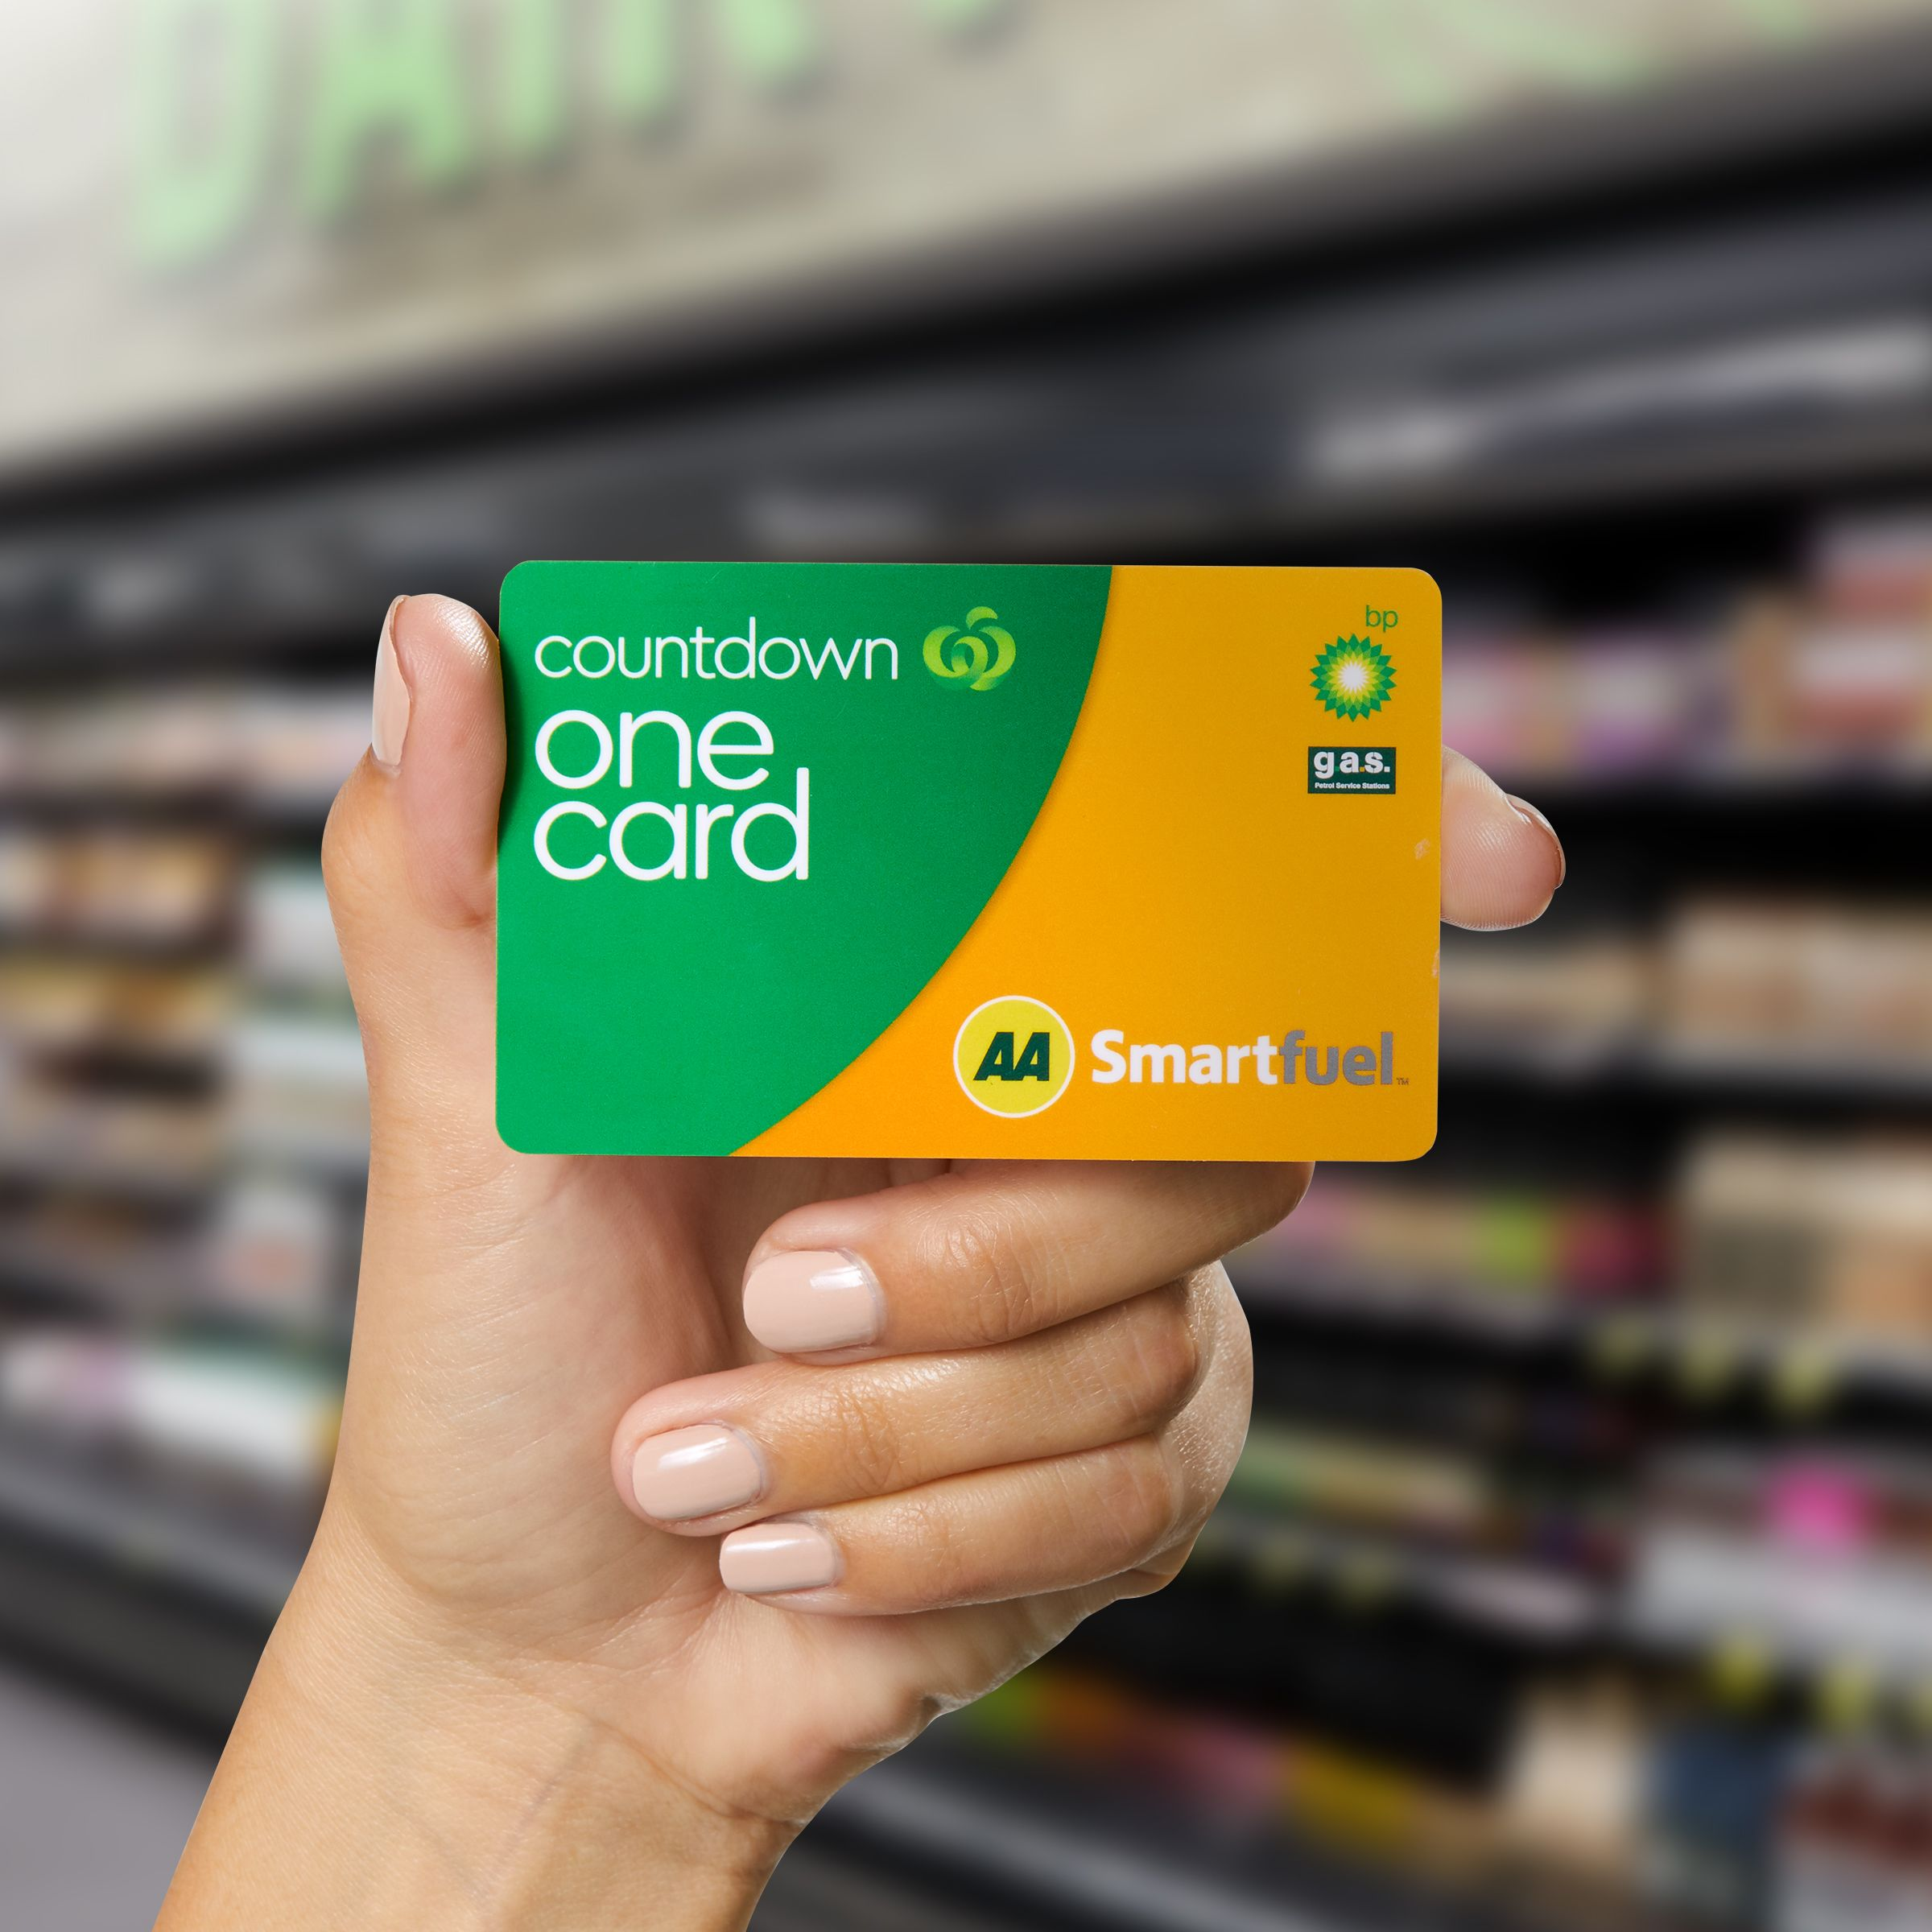 Pick it up in store and scan your Woolworths Rewards card at checkout